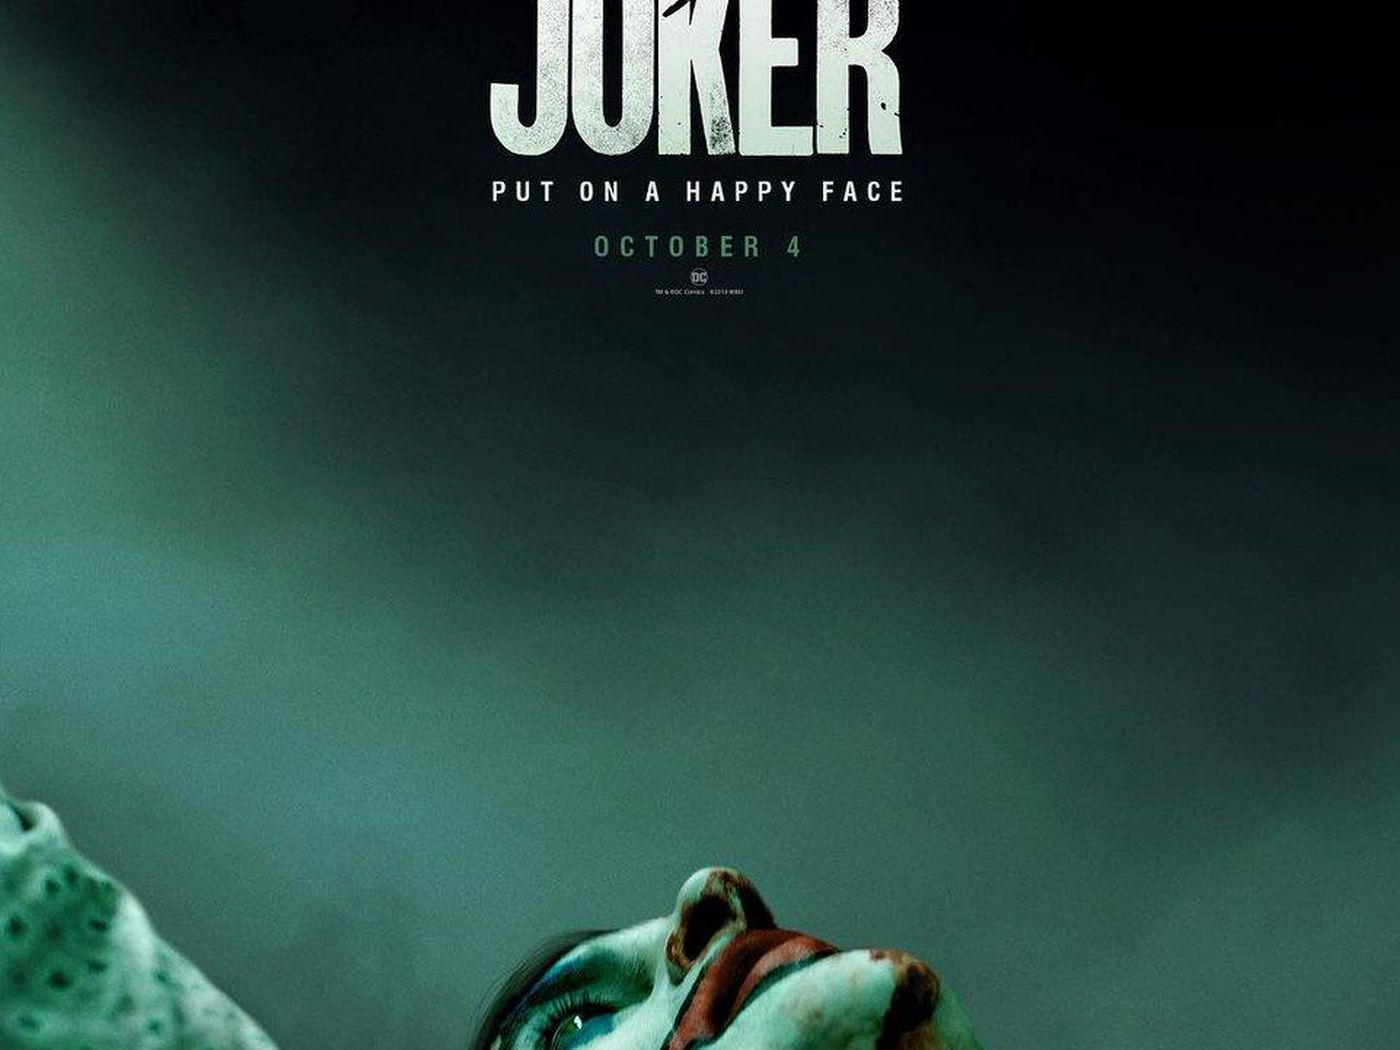 Joker Poster Teases A Direct Connection To A Martin Scorsese